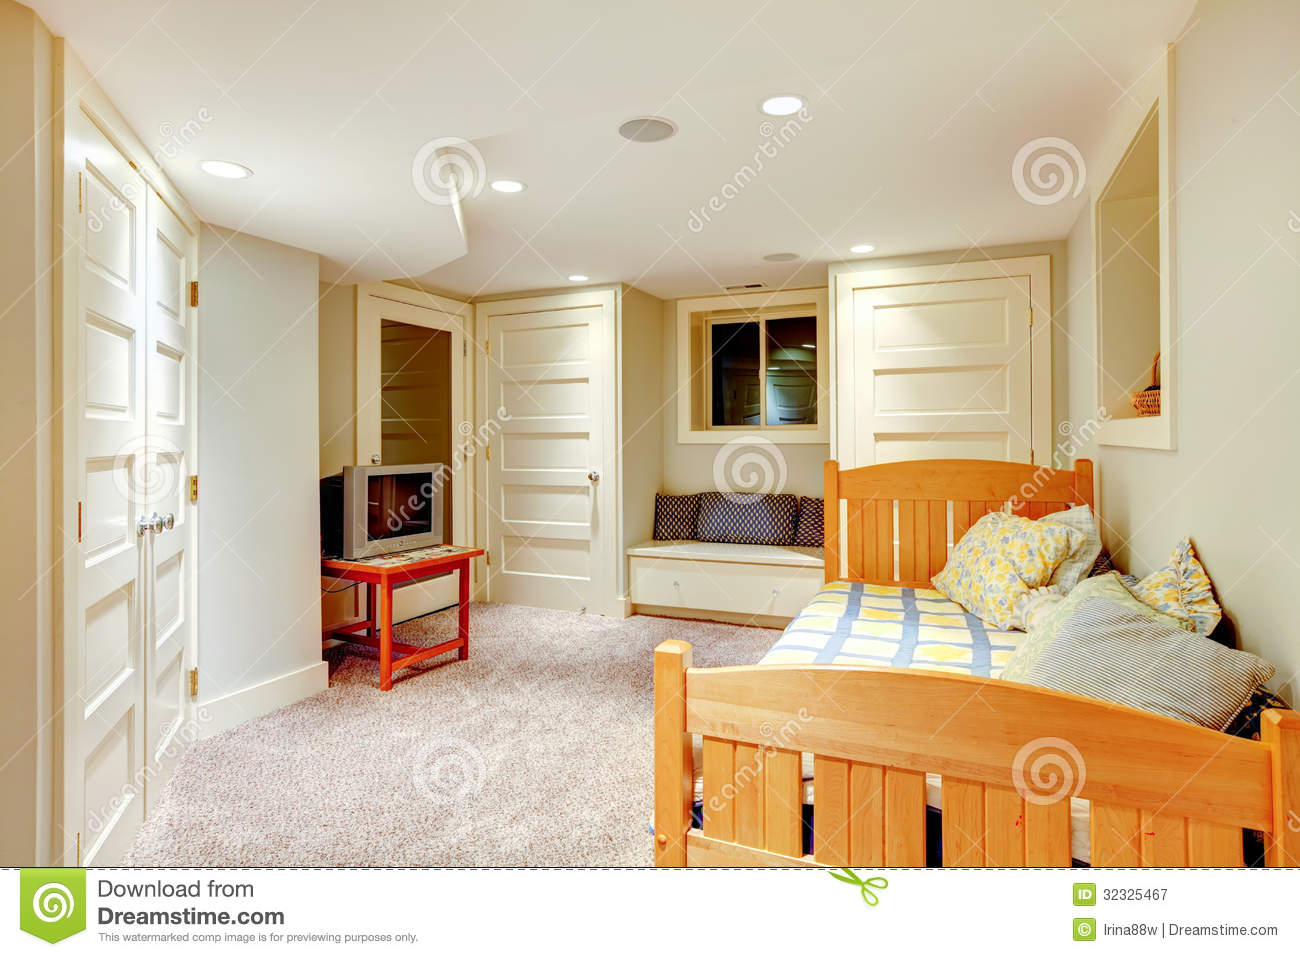 Clean And Bright Basement Bedroom With White Walls And